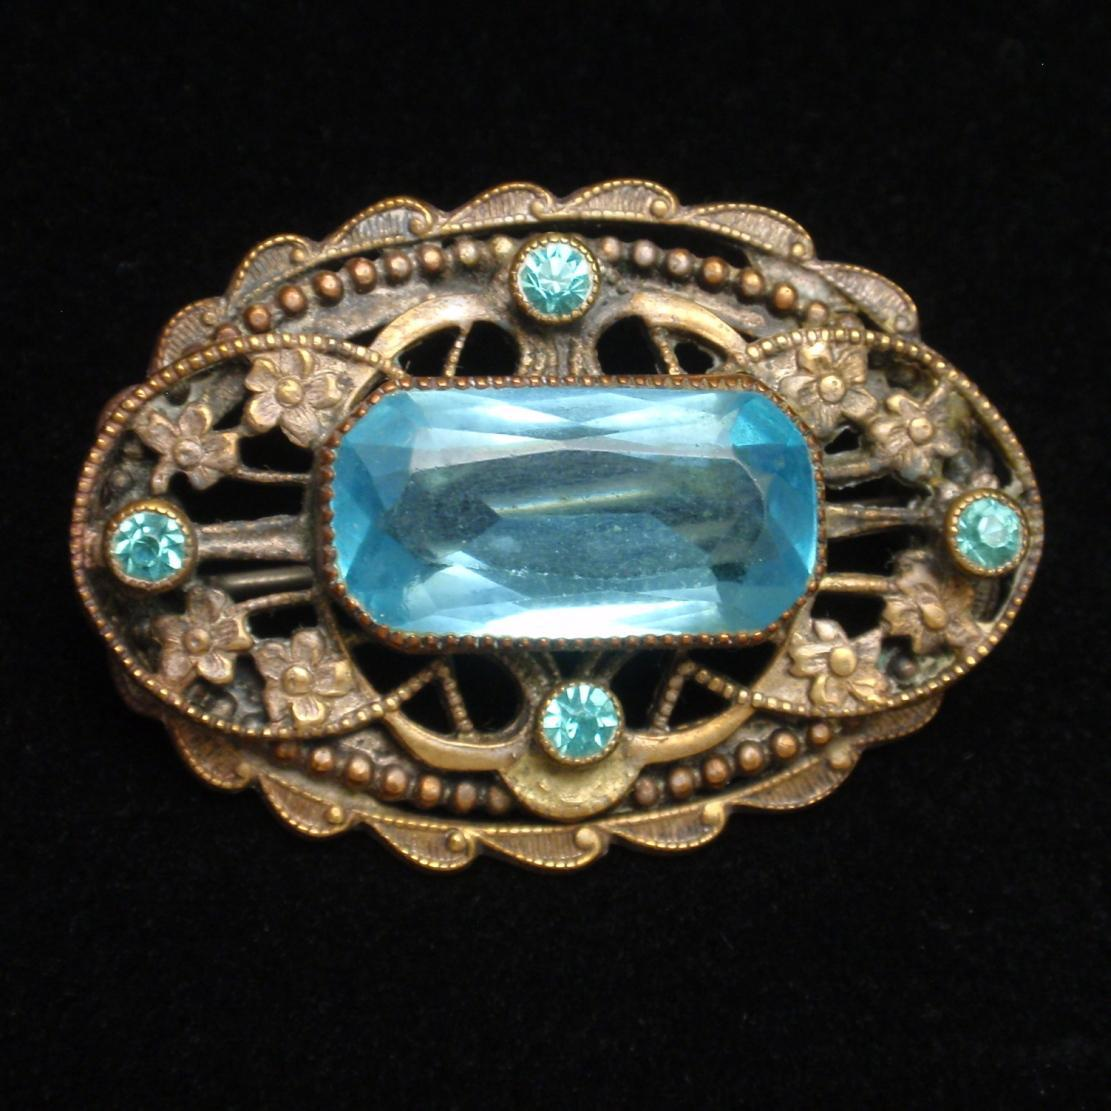 Vintage Oval Pin with Large Aqua Central Stone